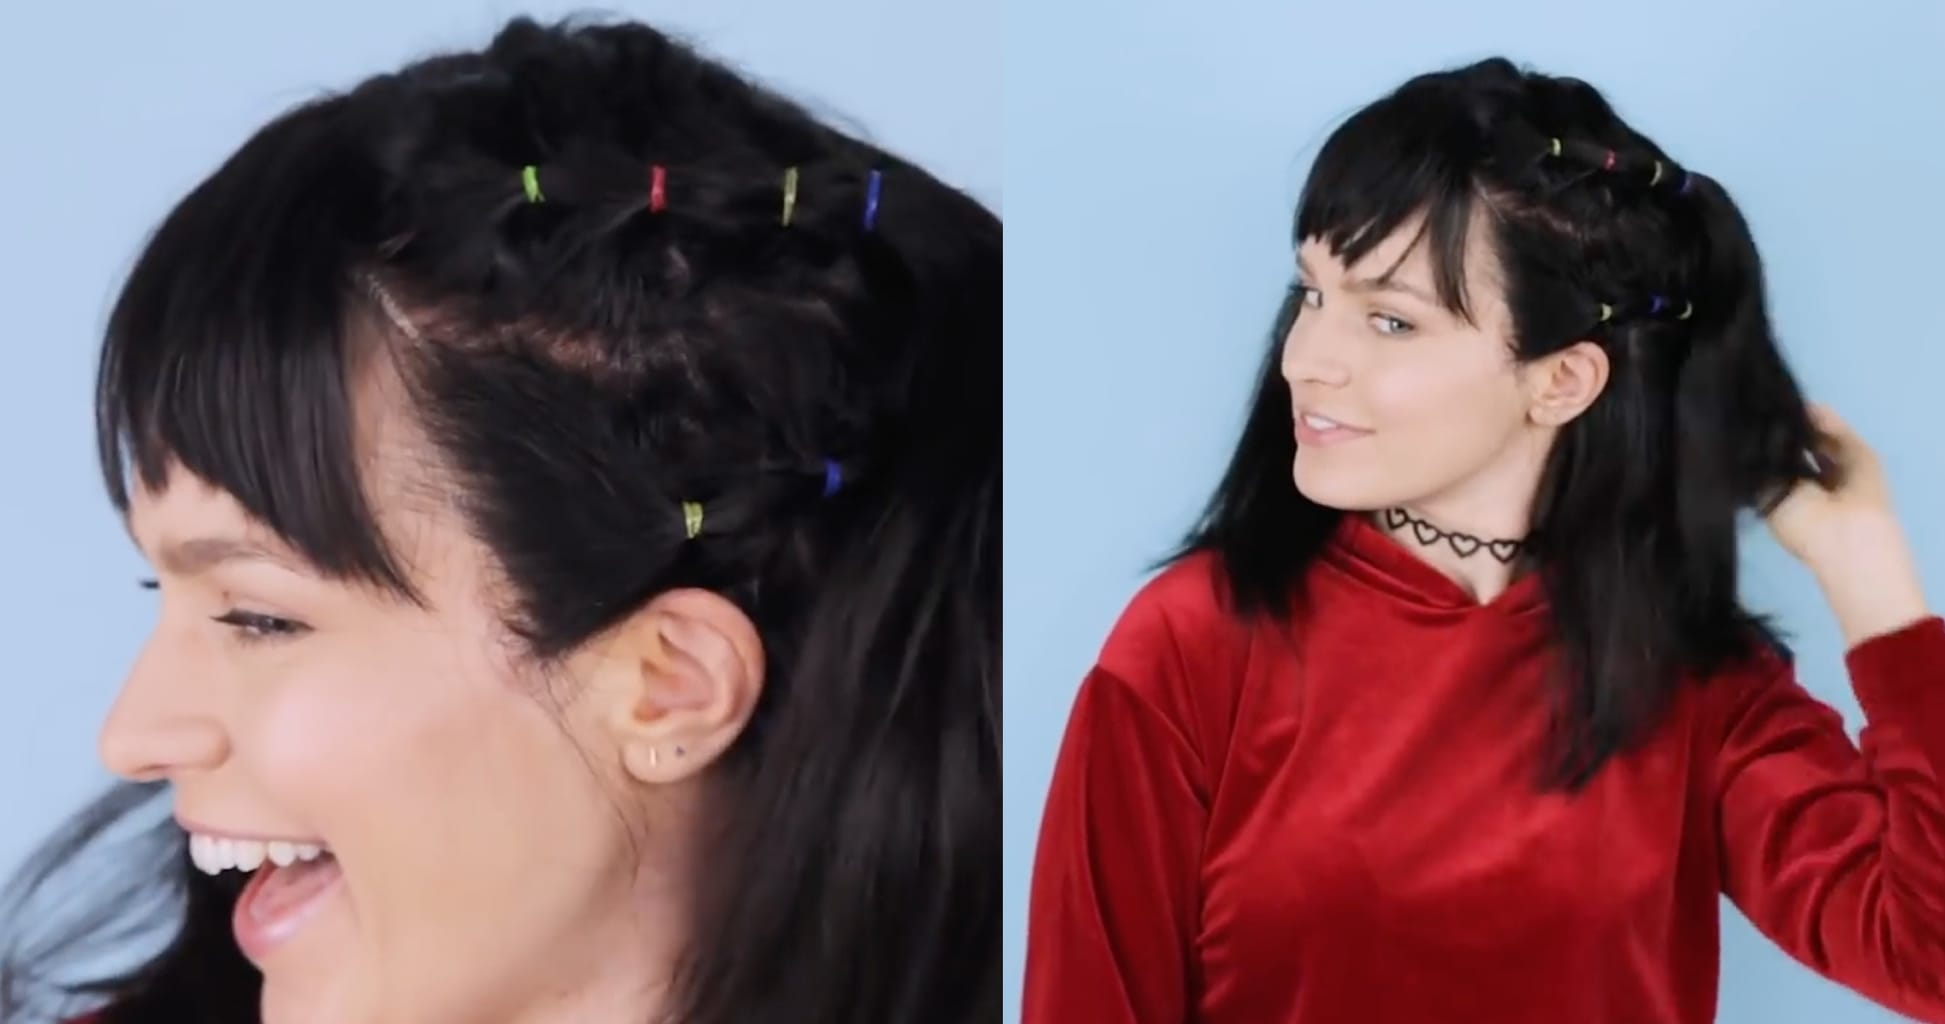 Miranda Sanchez costume - two hairstyles to try for Halloween